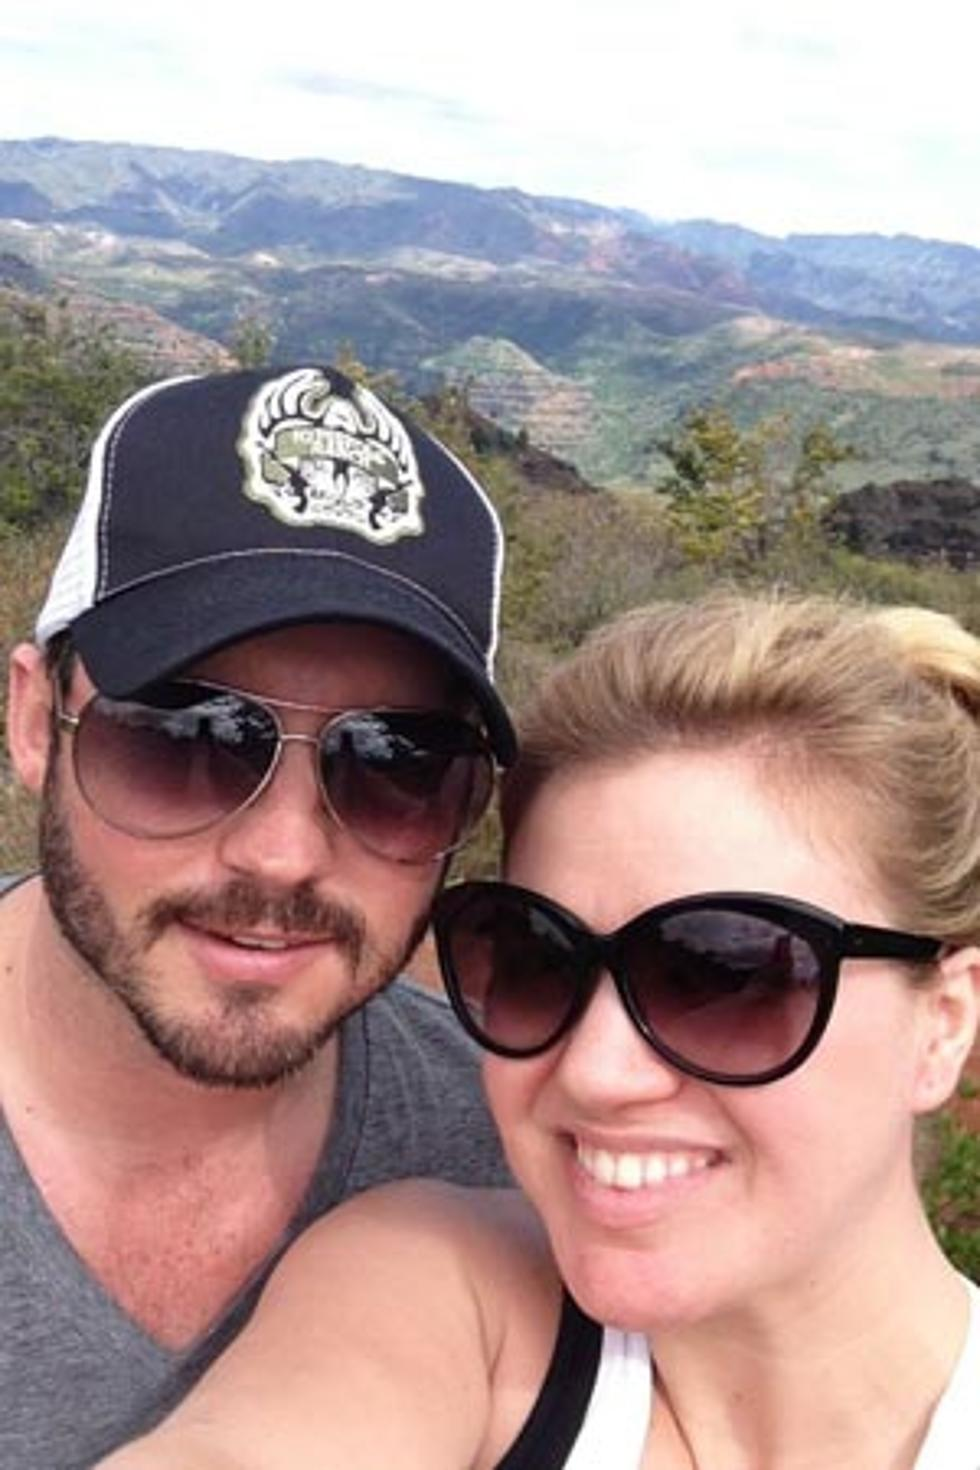 Kelly Clarkson Shares Romantic Vacation Photo With Fiance